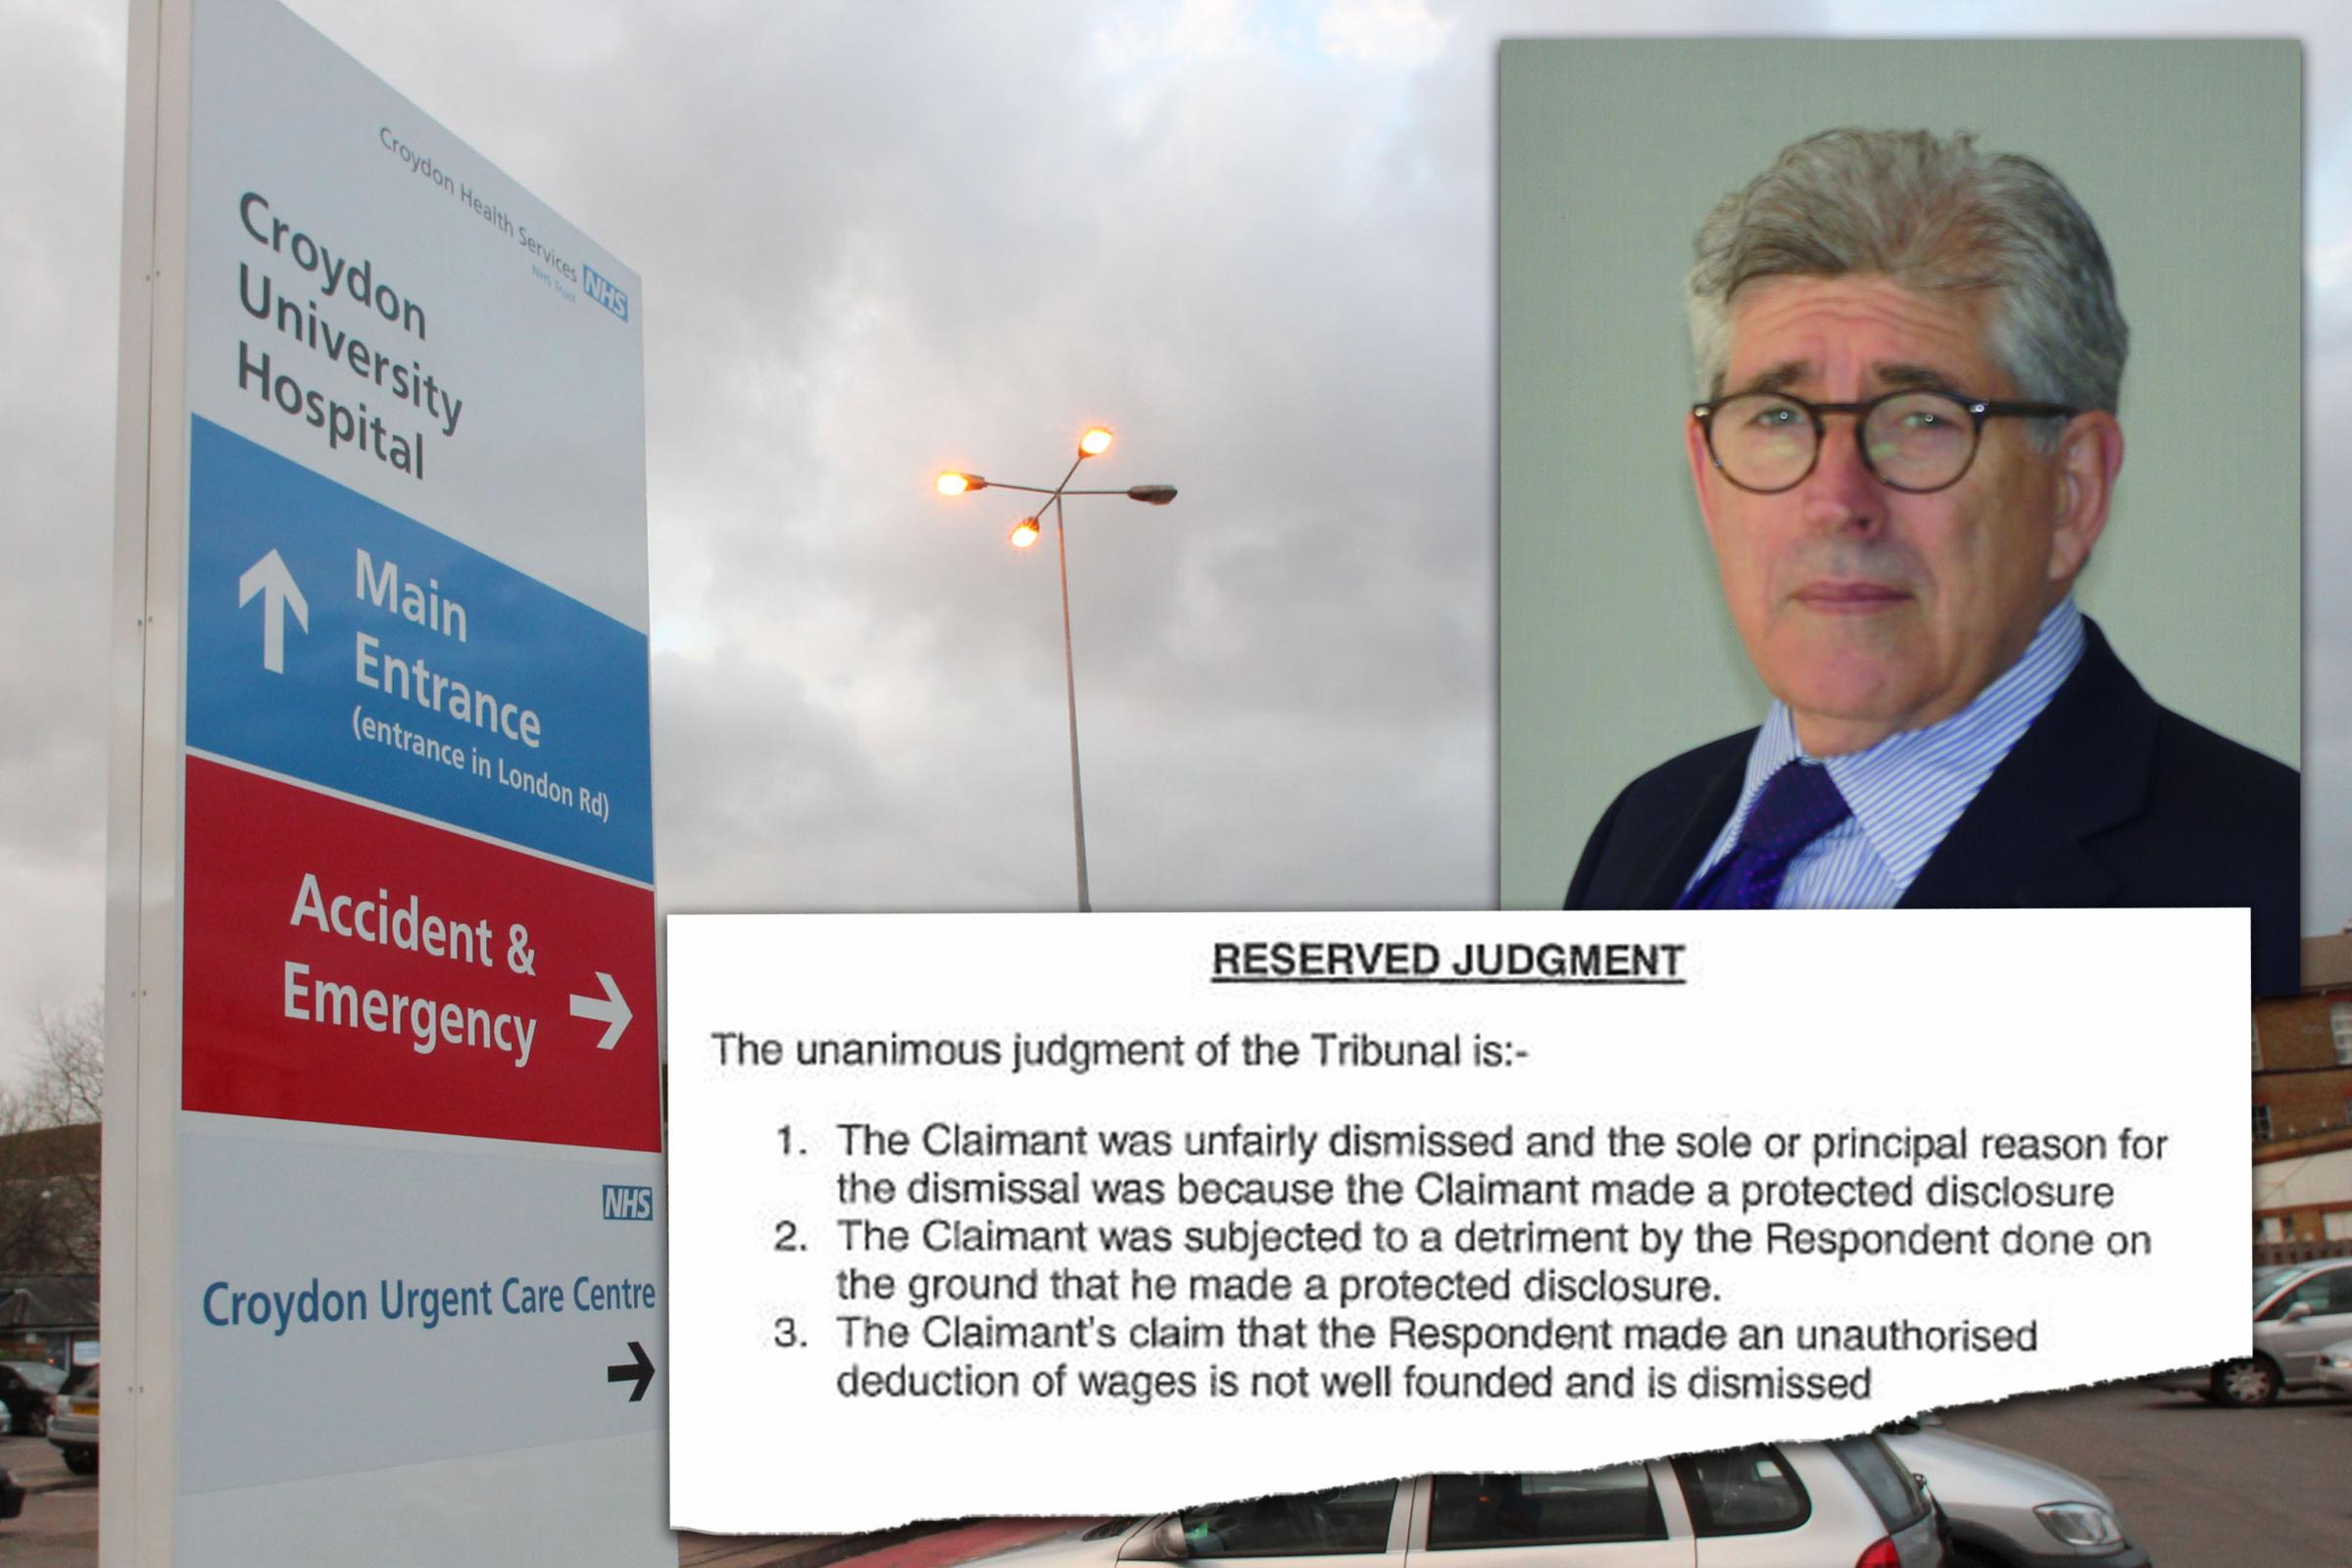 Kevin Beatt was sacked by Croydon University Hospital for whisteblowing on patient safety